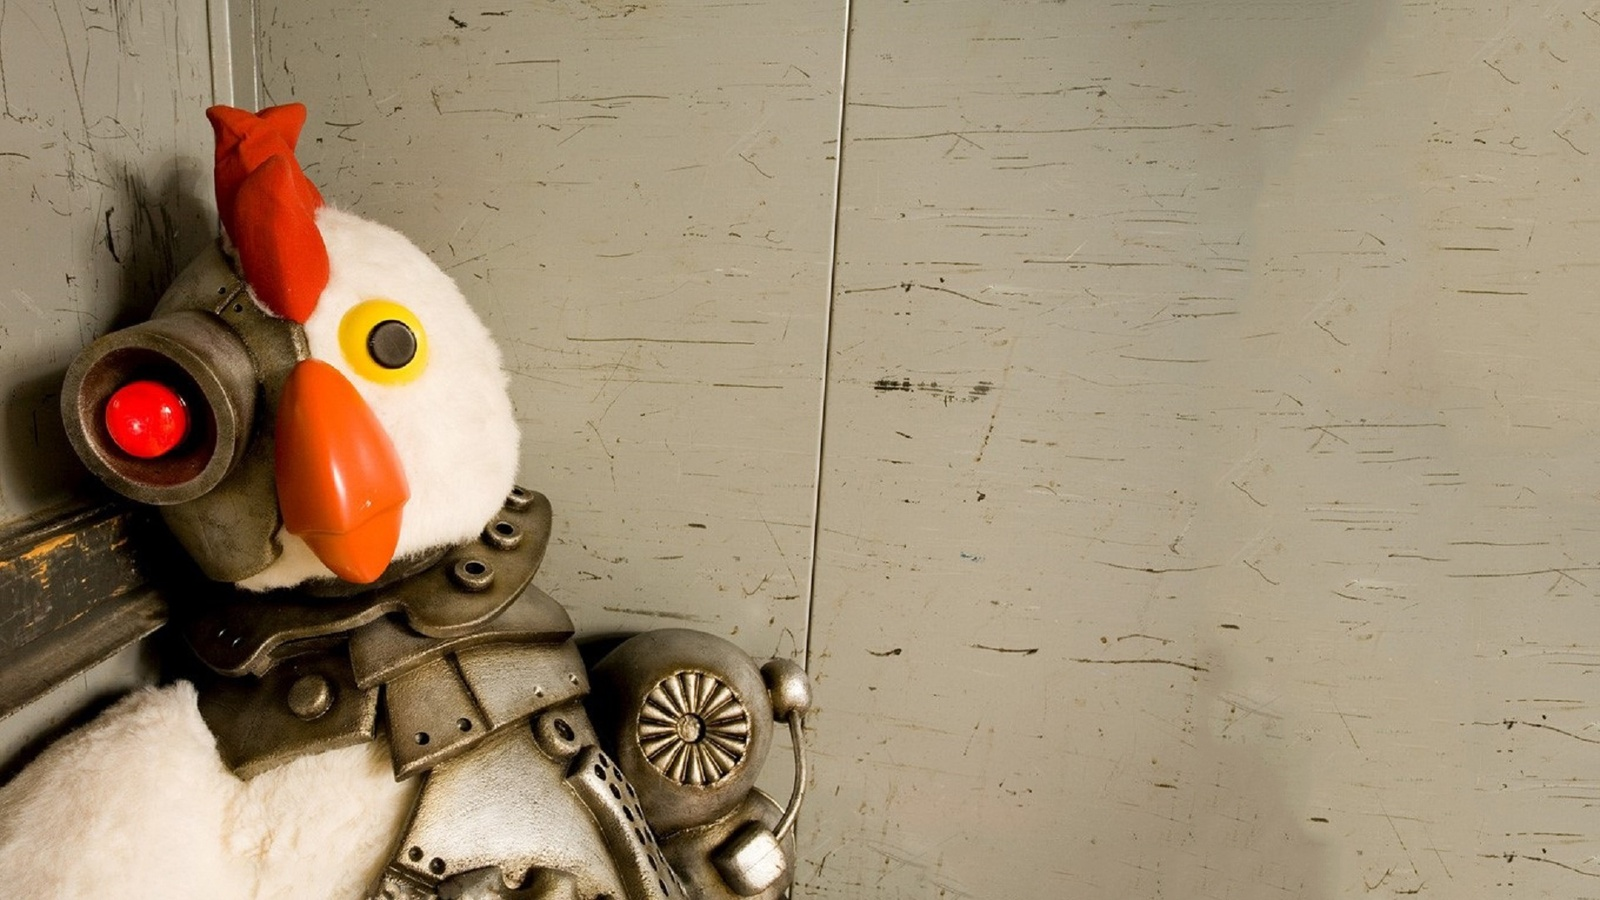 Робоцып / Robot Chicken background